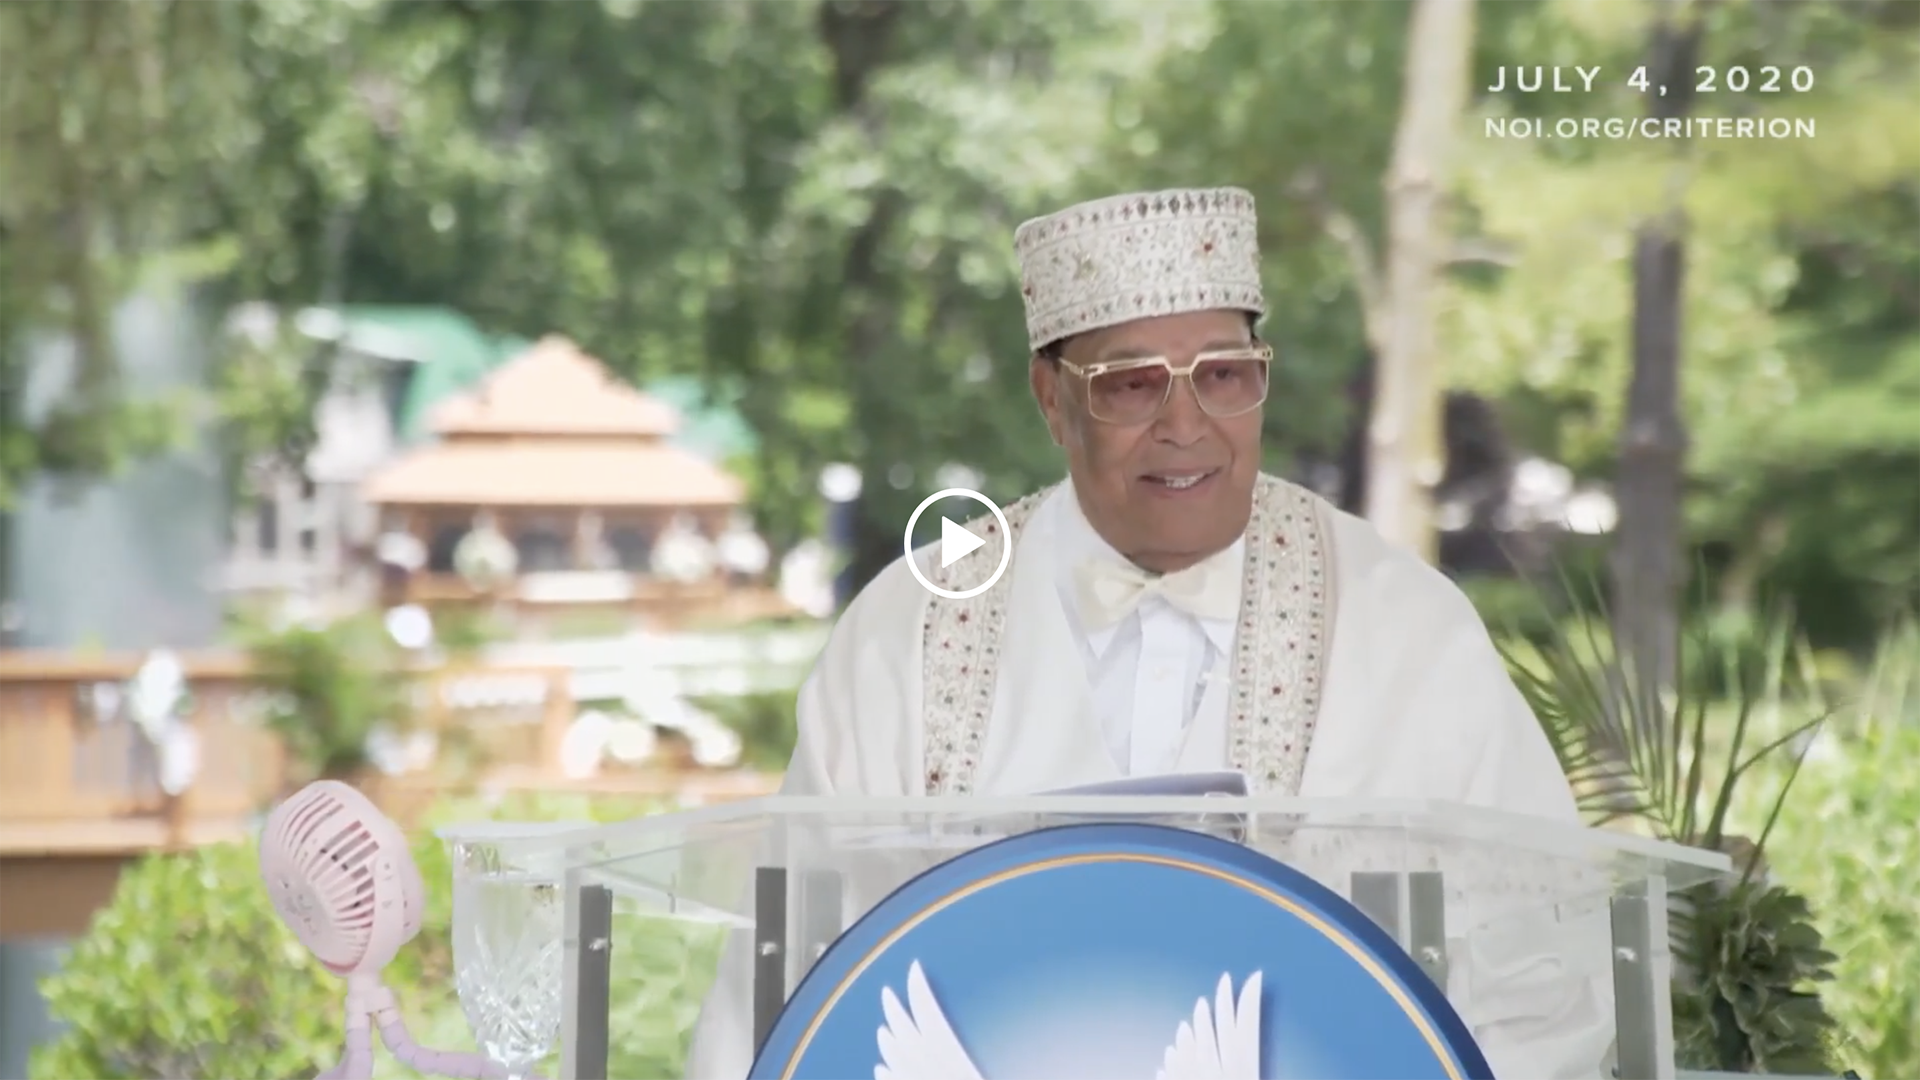 The Criterion: Who is Farrakhan?